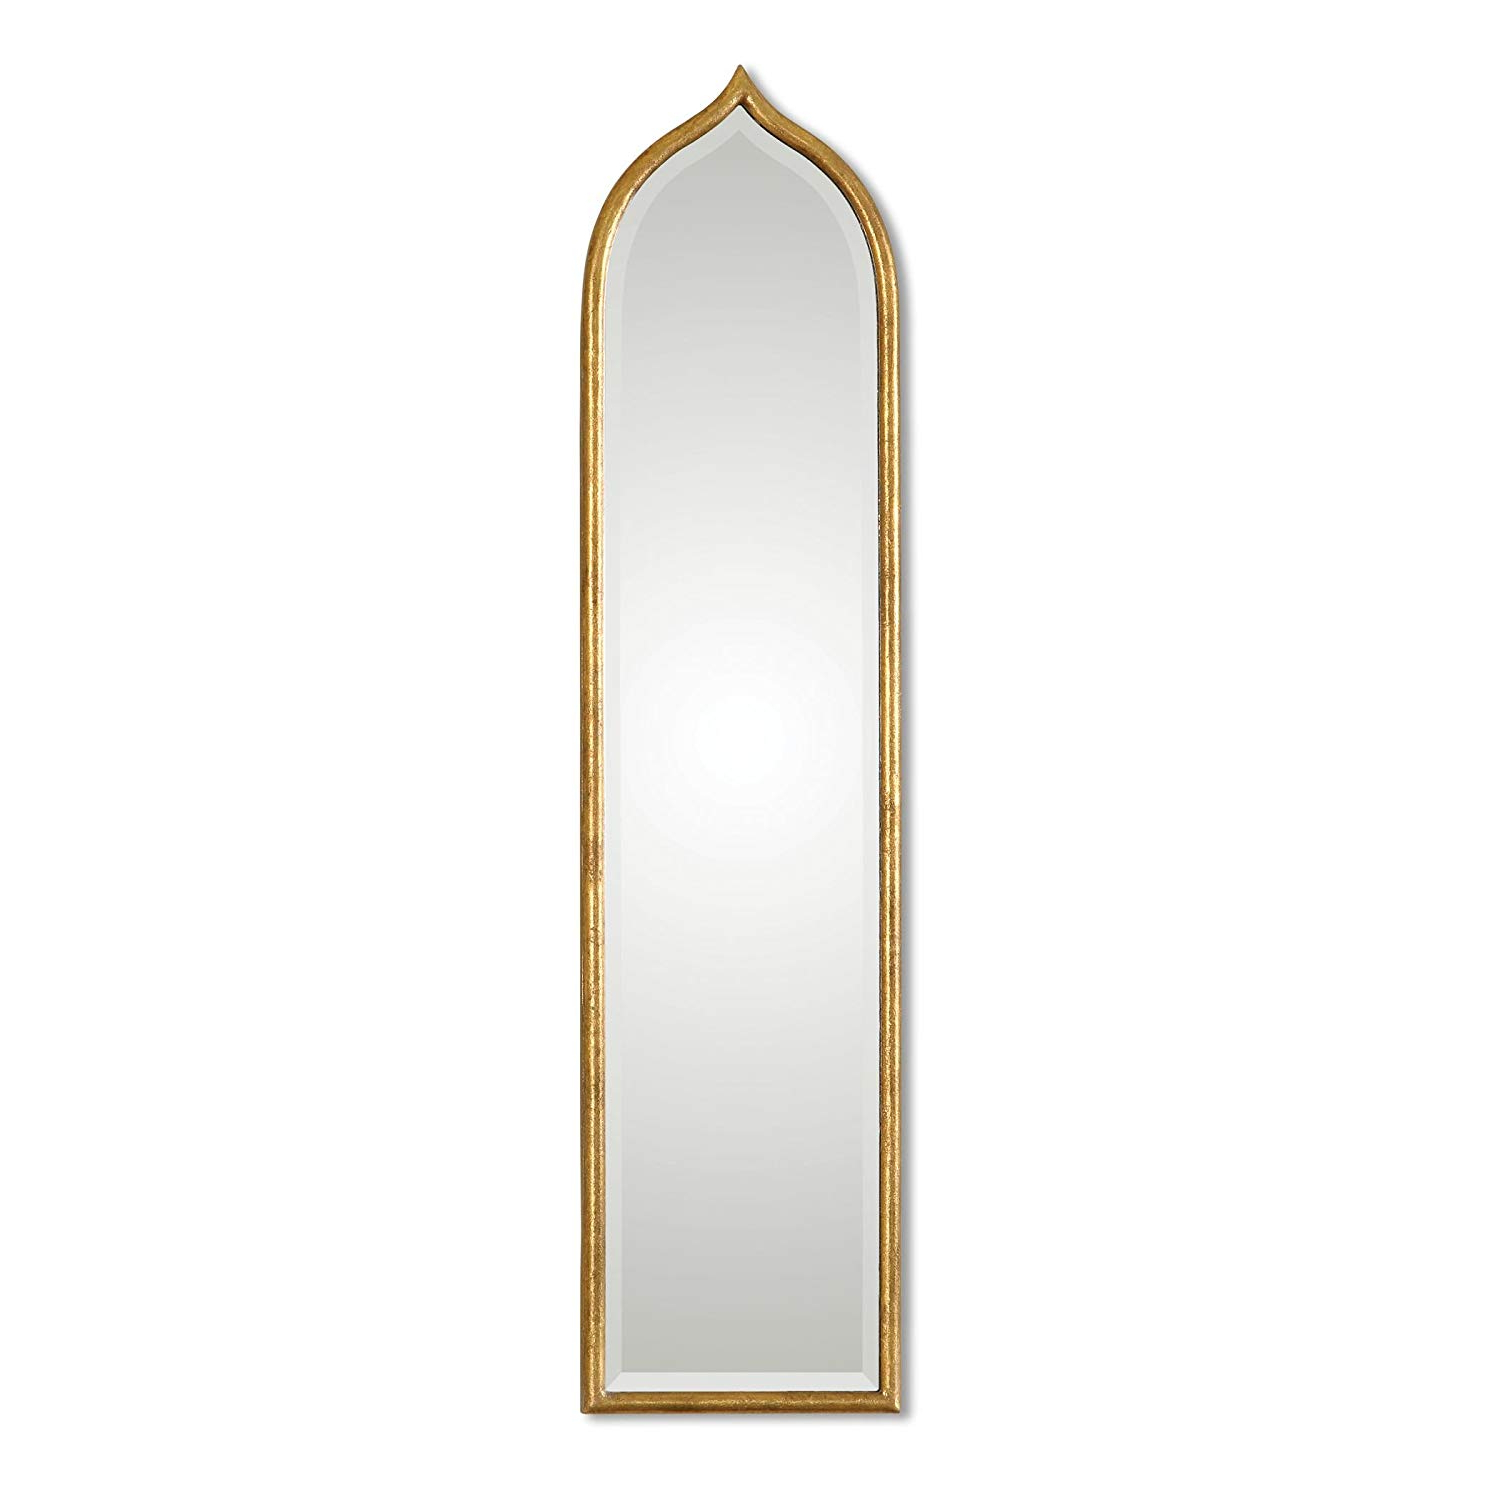 Widely Used Gold Arch Wall Mirrors In Amazon: Zinc Decor Narrow Arch Gold Leaf Beveled Wall Mirror (View 14 of 20)